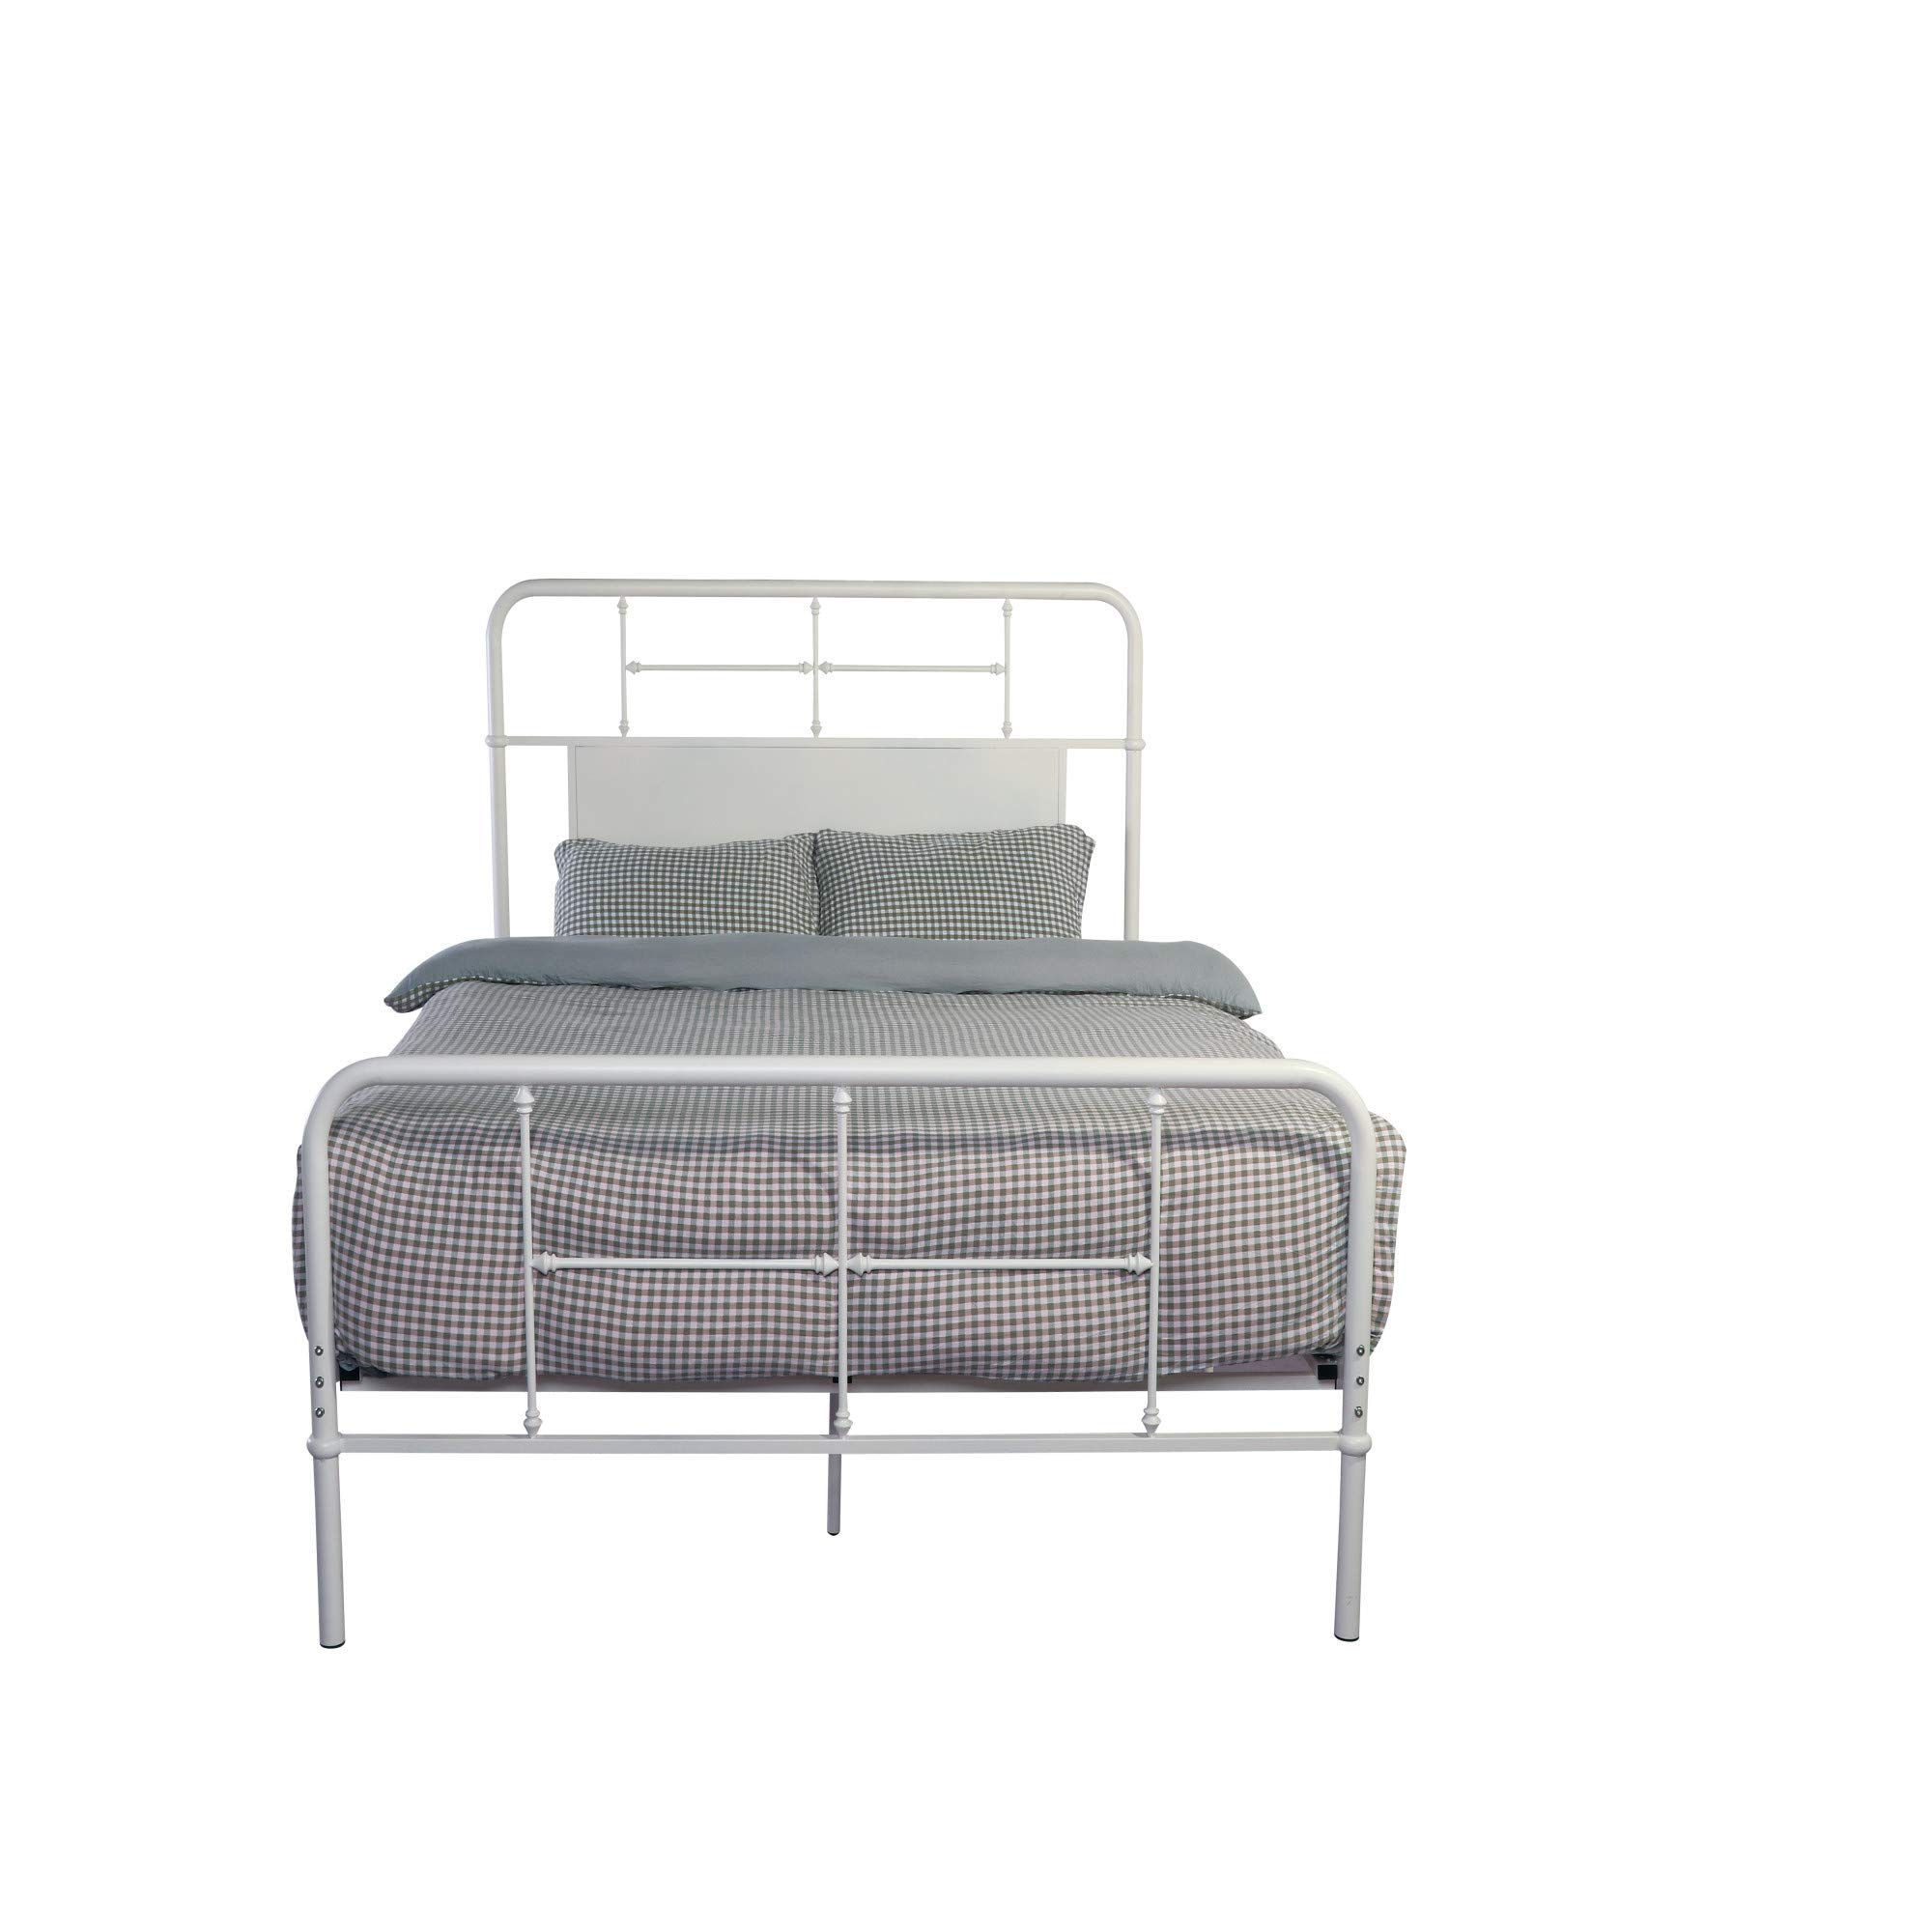 Brisbane Twin Metal Bed in Mountain Peak White with Solid Headboard Panel, by Artum Hill